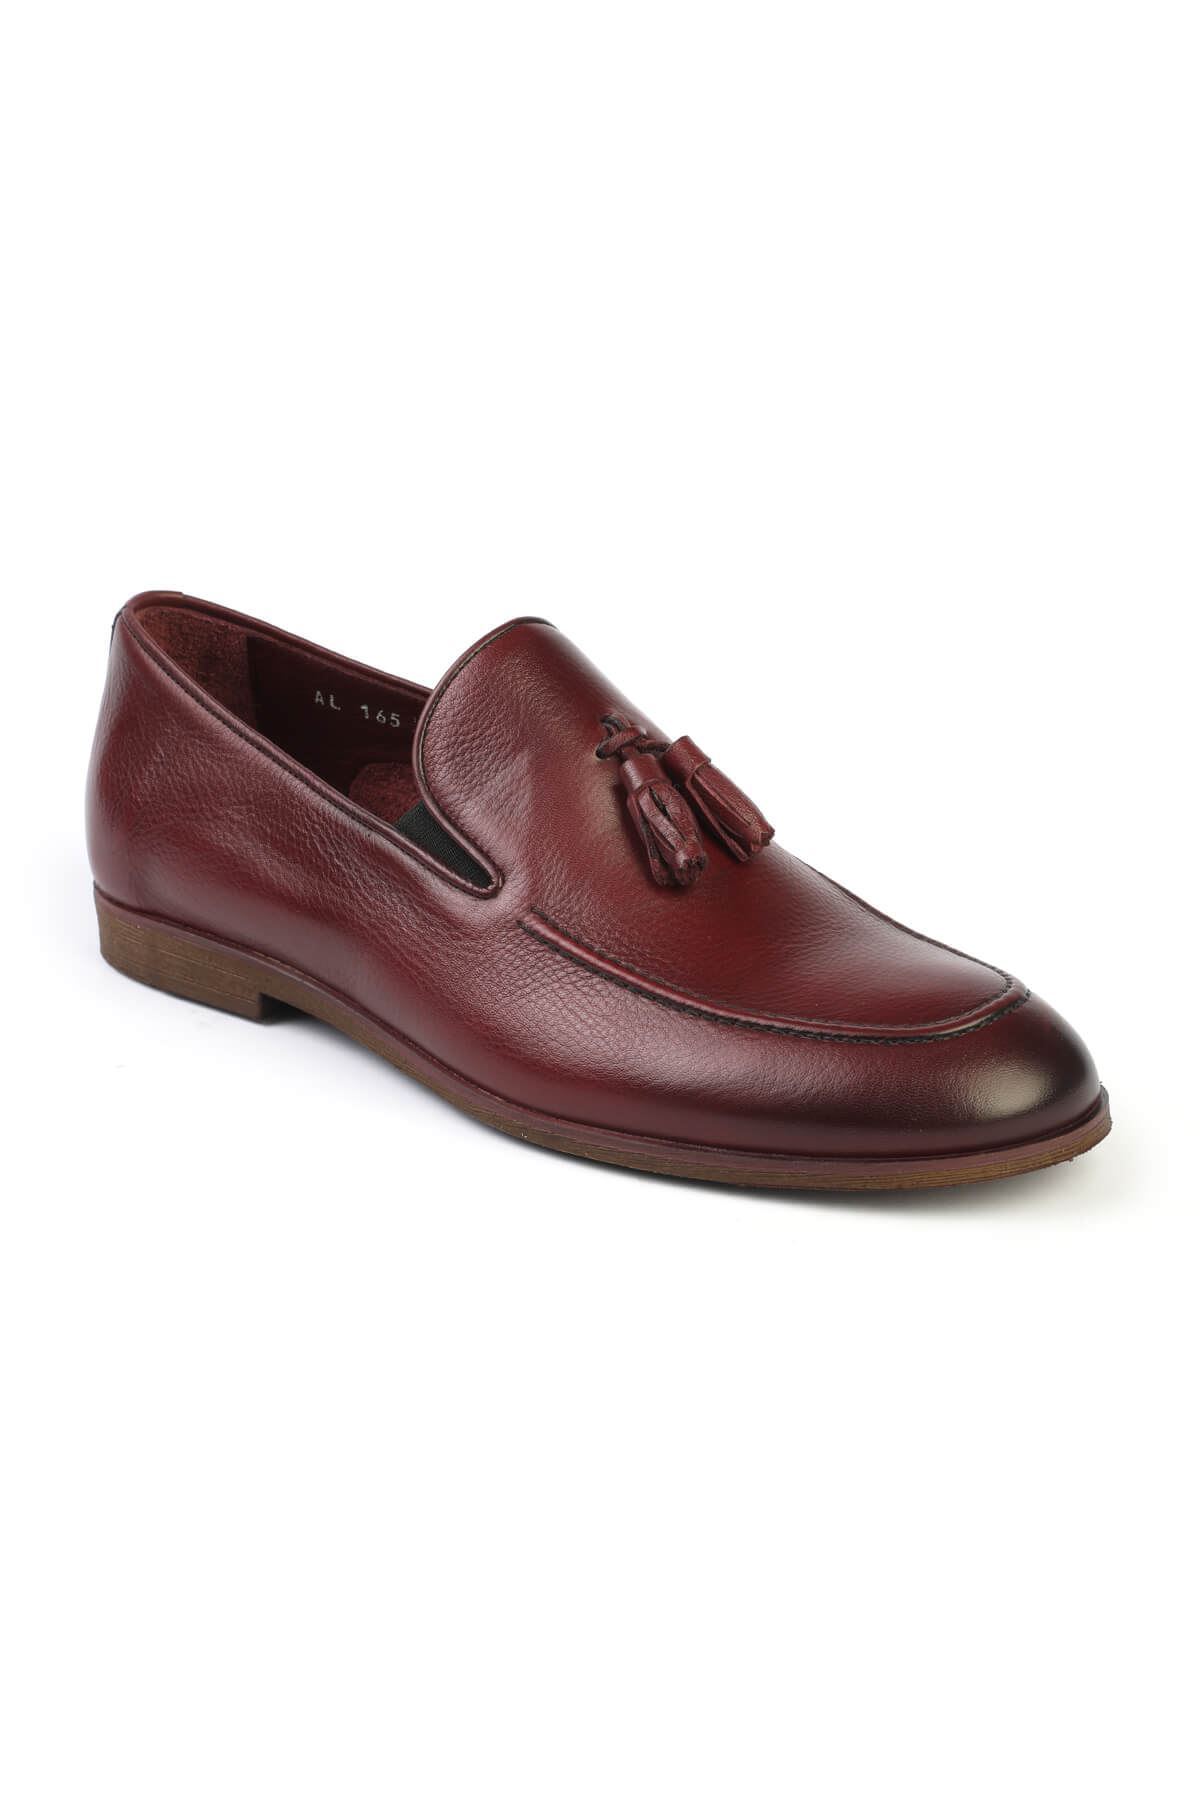 Libero C165 Claret Red Loafer Shoes